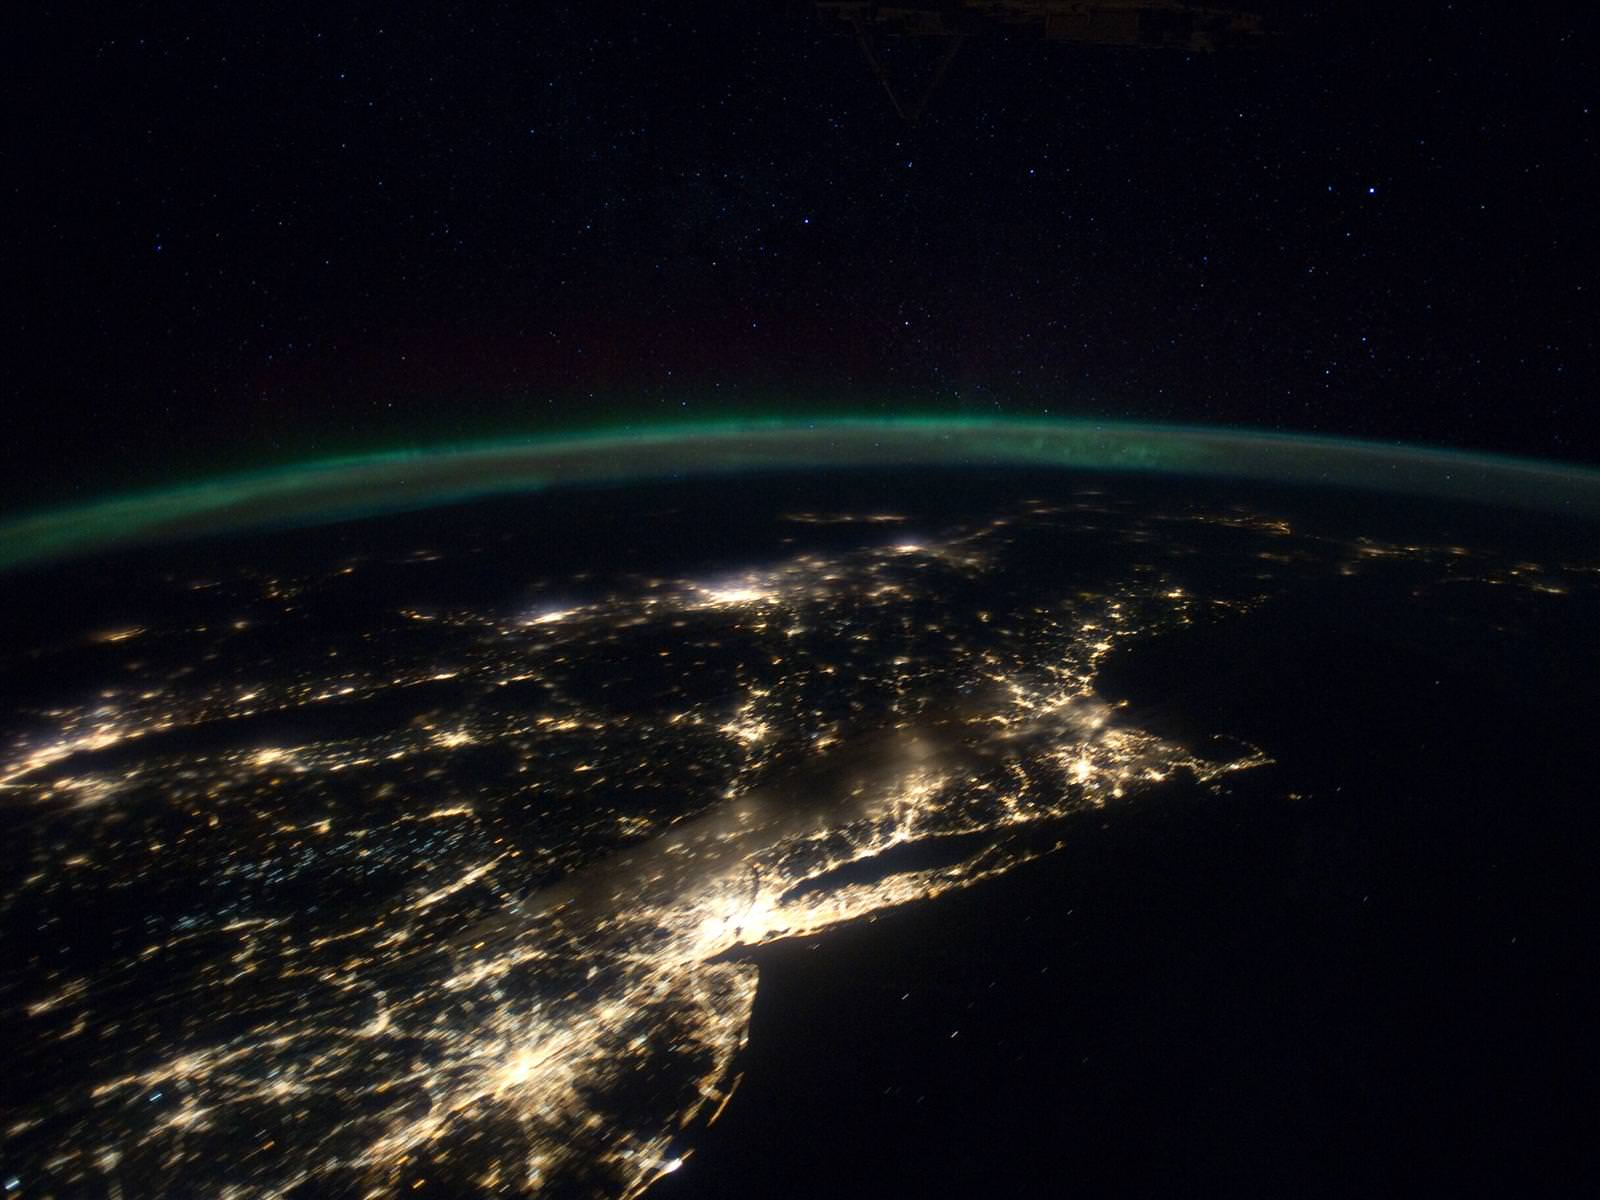 Nighttime Panorama of US East Coast from the ISS.  Astronauts aboard the International Space Station (ISS) captured this stunning nighttime panorama of the major cities along the East Coast of the United States on Jan. 29. Credit: NASA